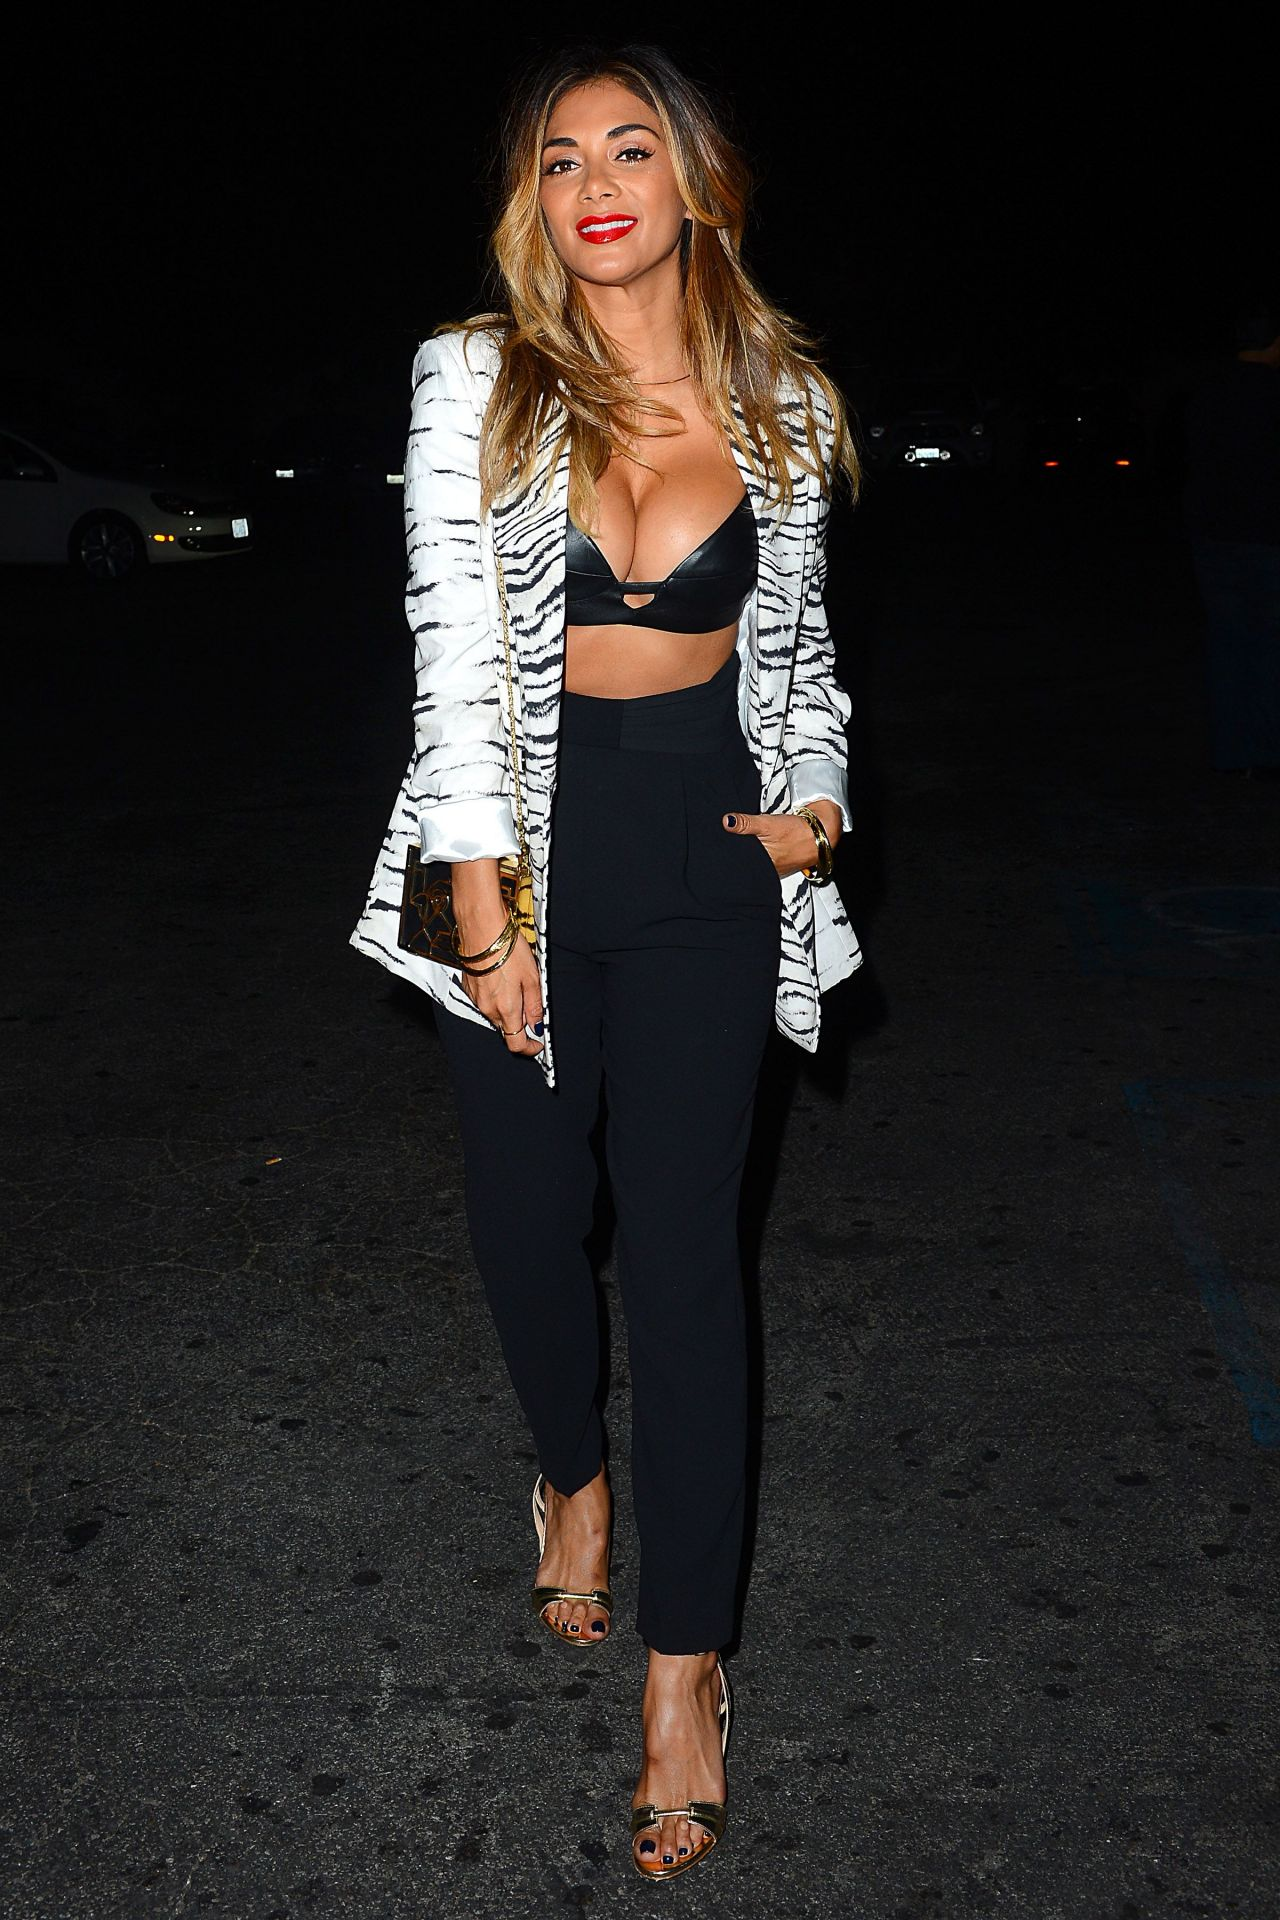 nicole-scherzinger-just-jared-s-way-to-wonderland-in-west-hollywood-august-2015_12